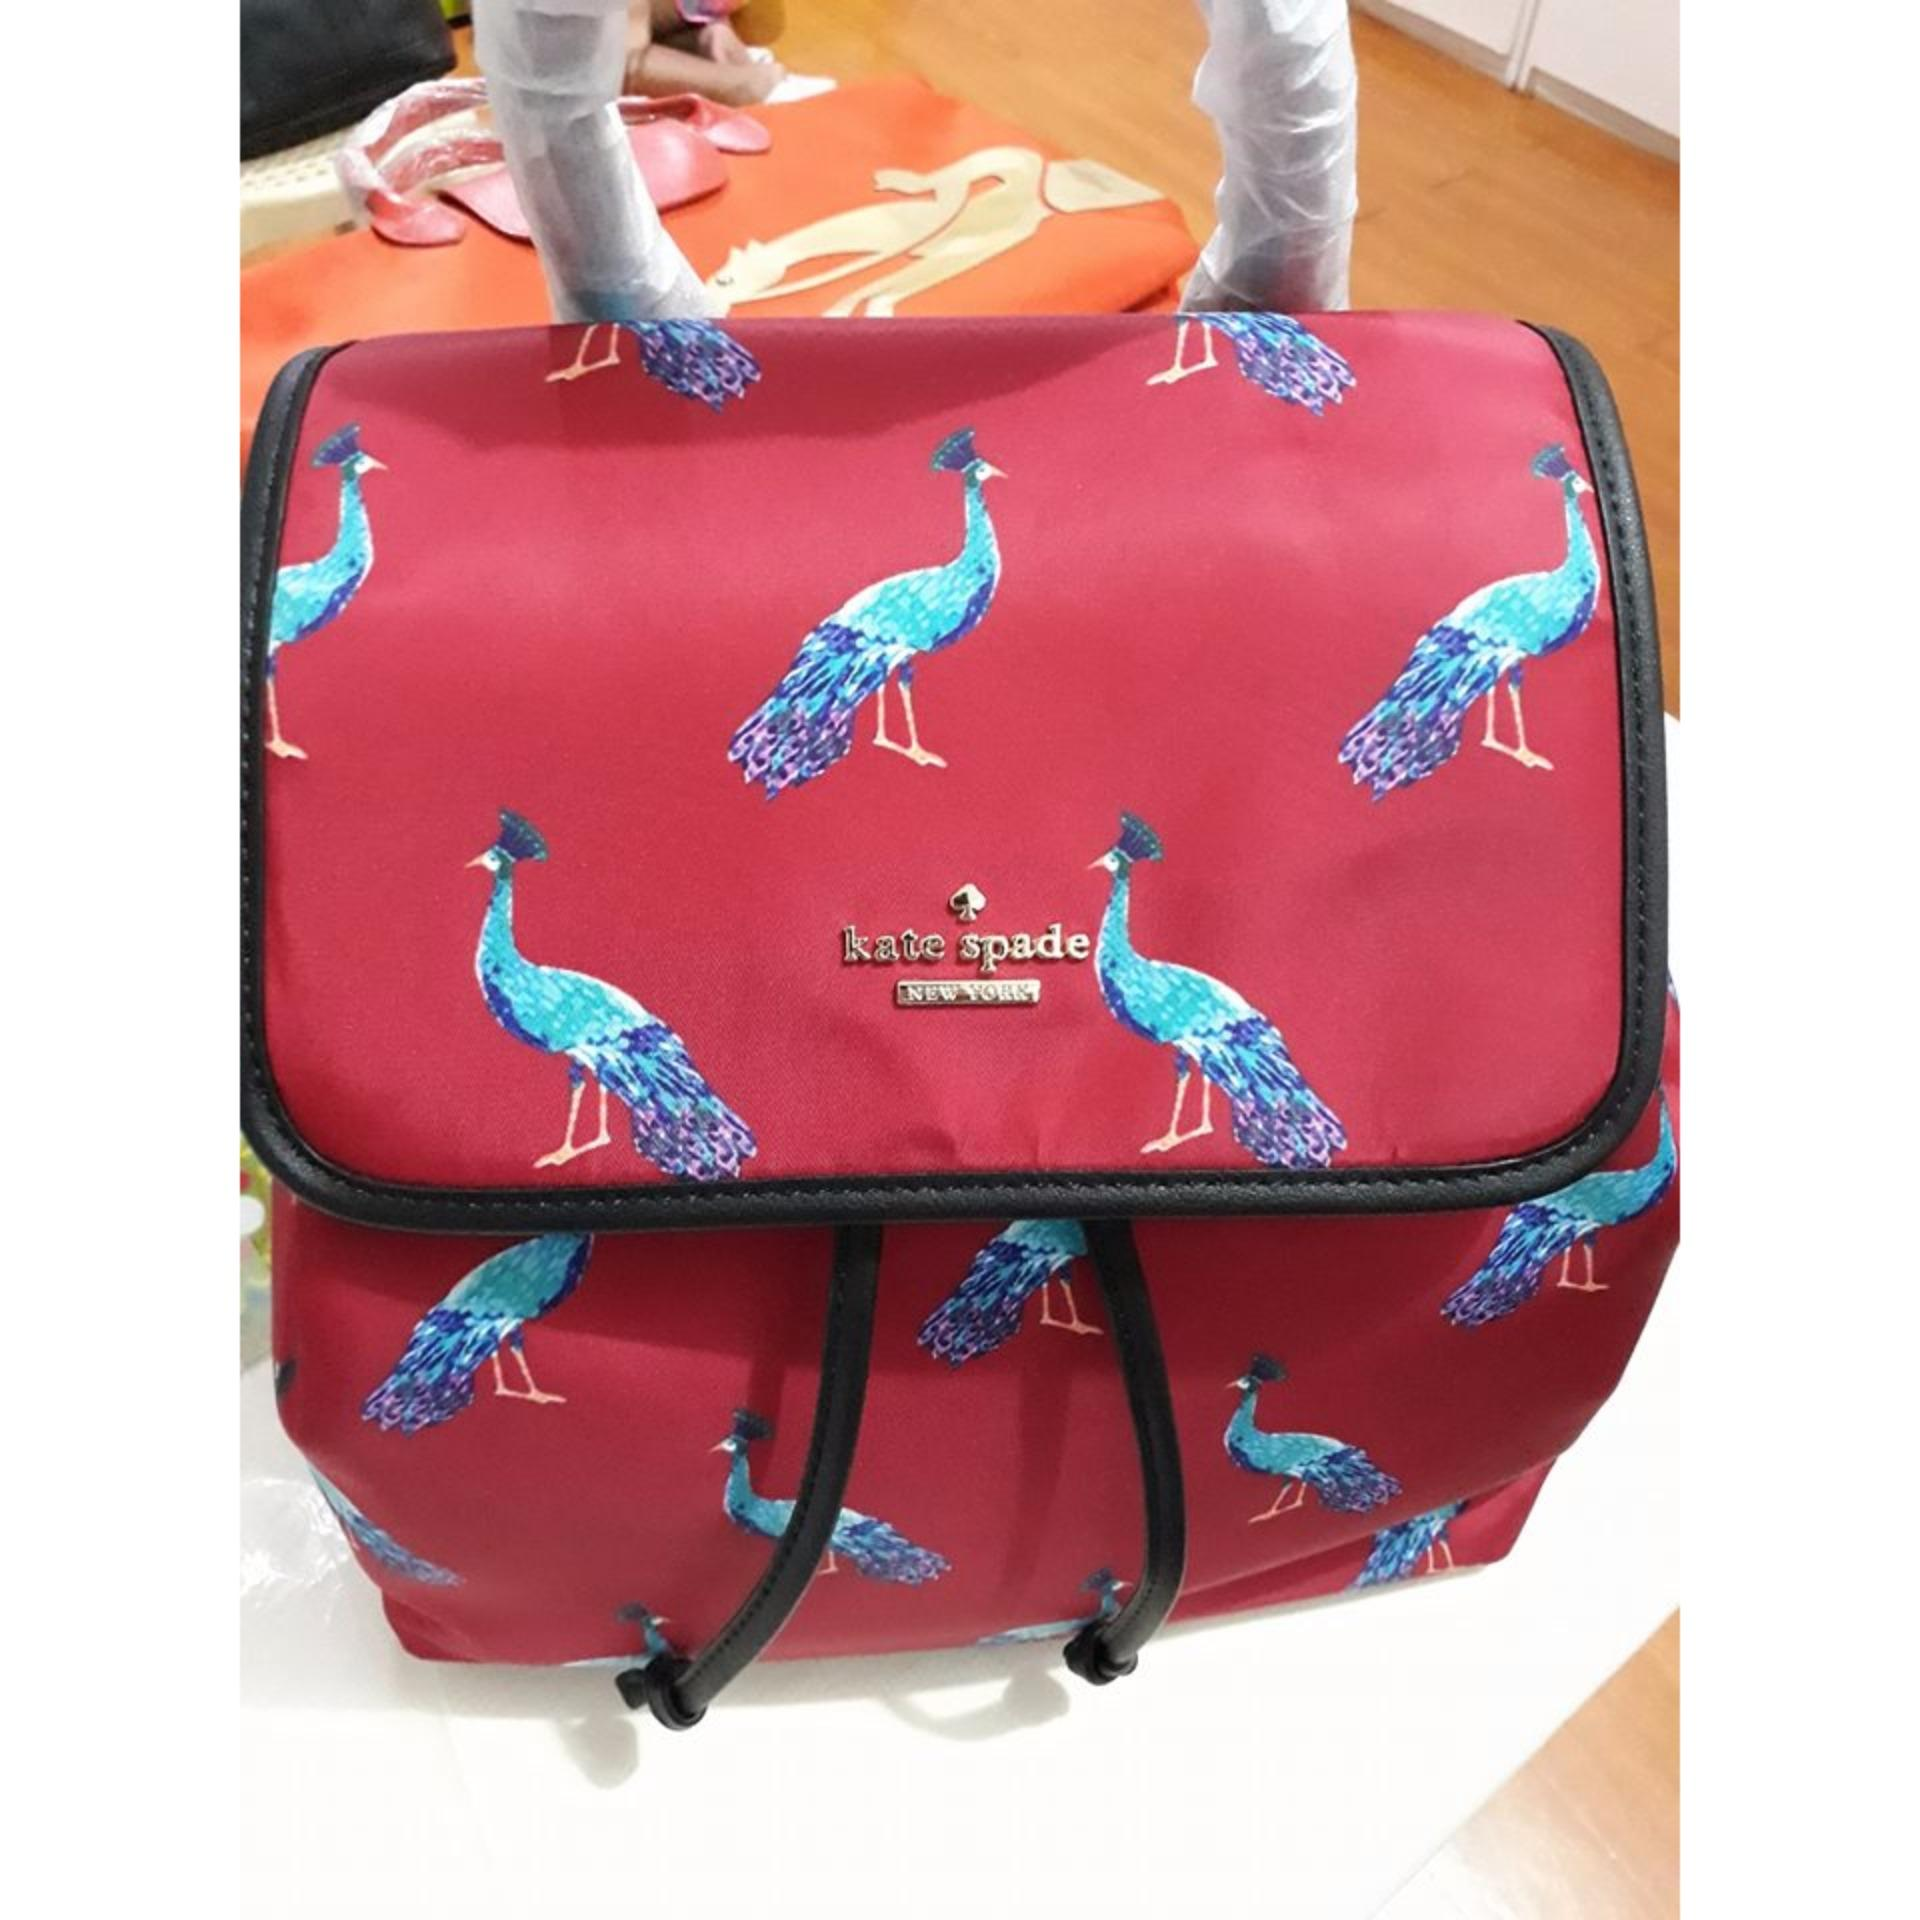 Kate Spade Backpack In Peacock Design Philippines Lc006 Longchamp Le Pliage Large Long Handle Llh